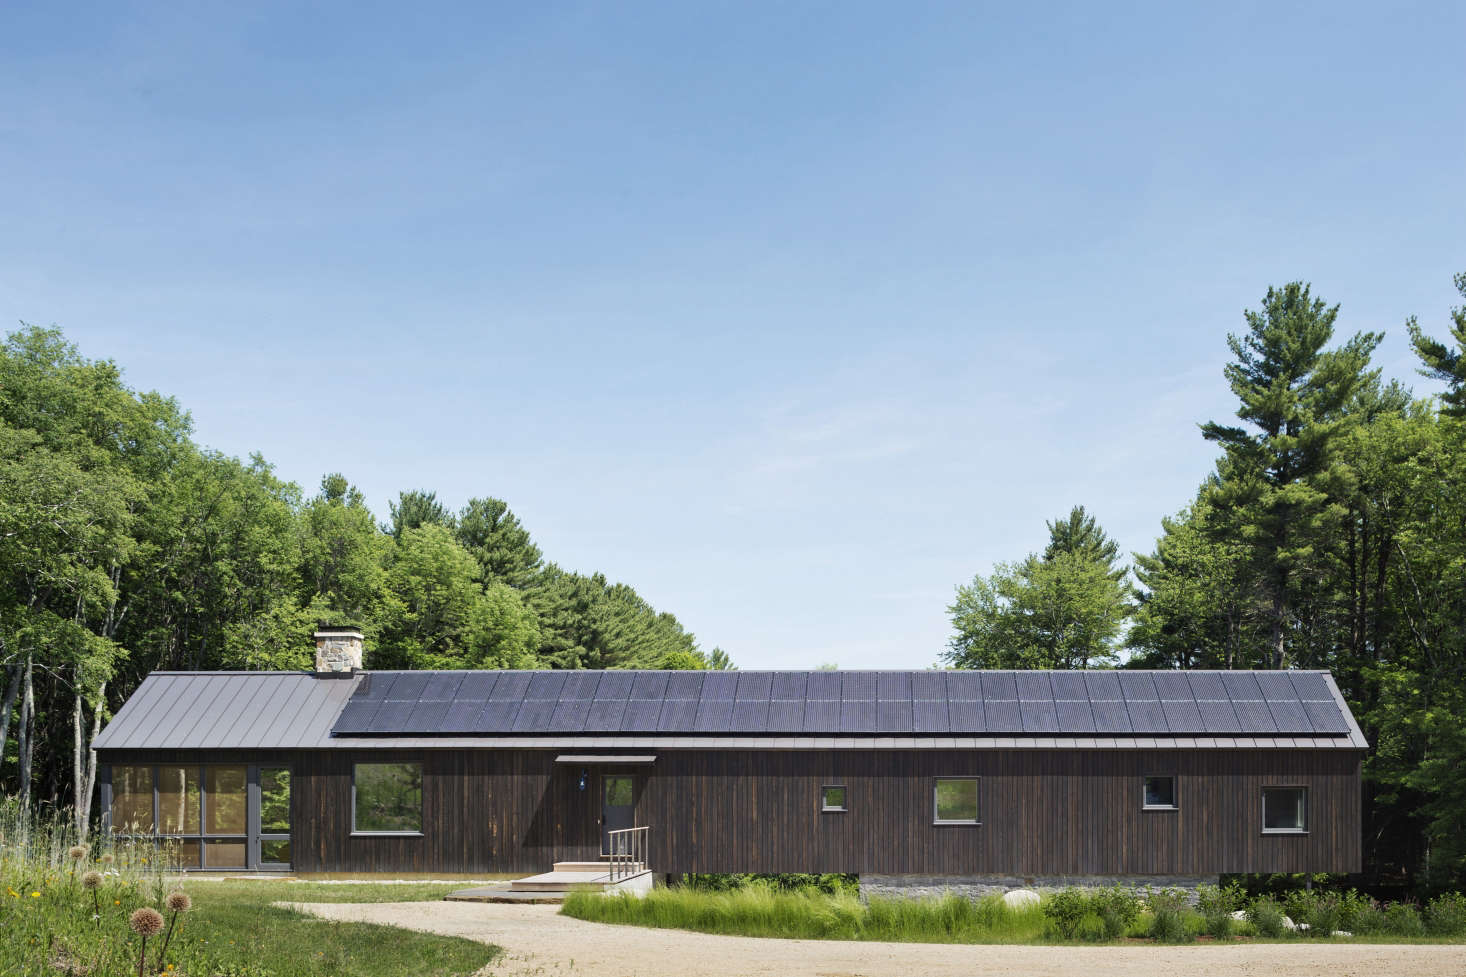 Standing seam metal roof and solar panels on Undermountain, a barn-style house in the Berkshires by O'Neill Rose Architects